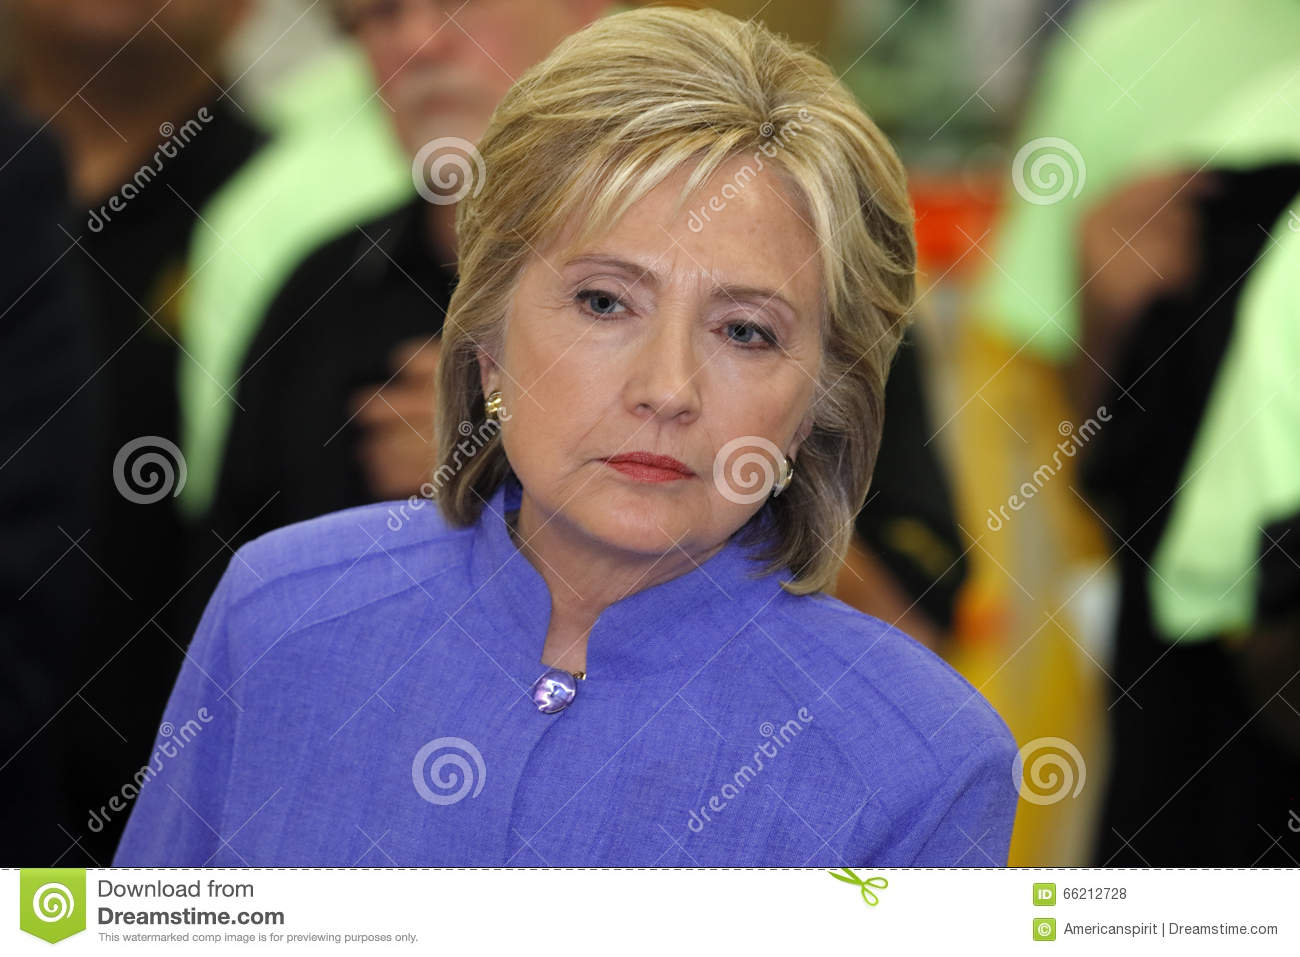 HENDERSON, NV - OCTOBER 14, 2015: Democratic U.S. presidential candidate & former Secretary of State Hillary Clinton listens at In